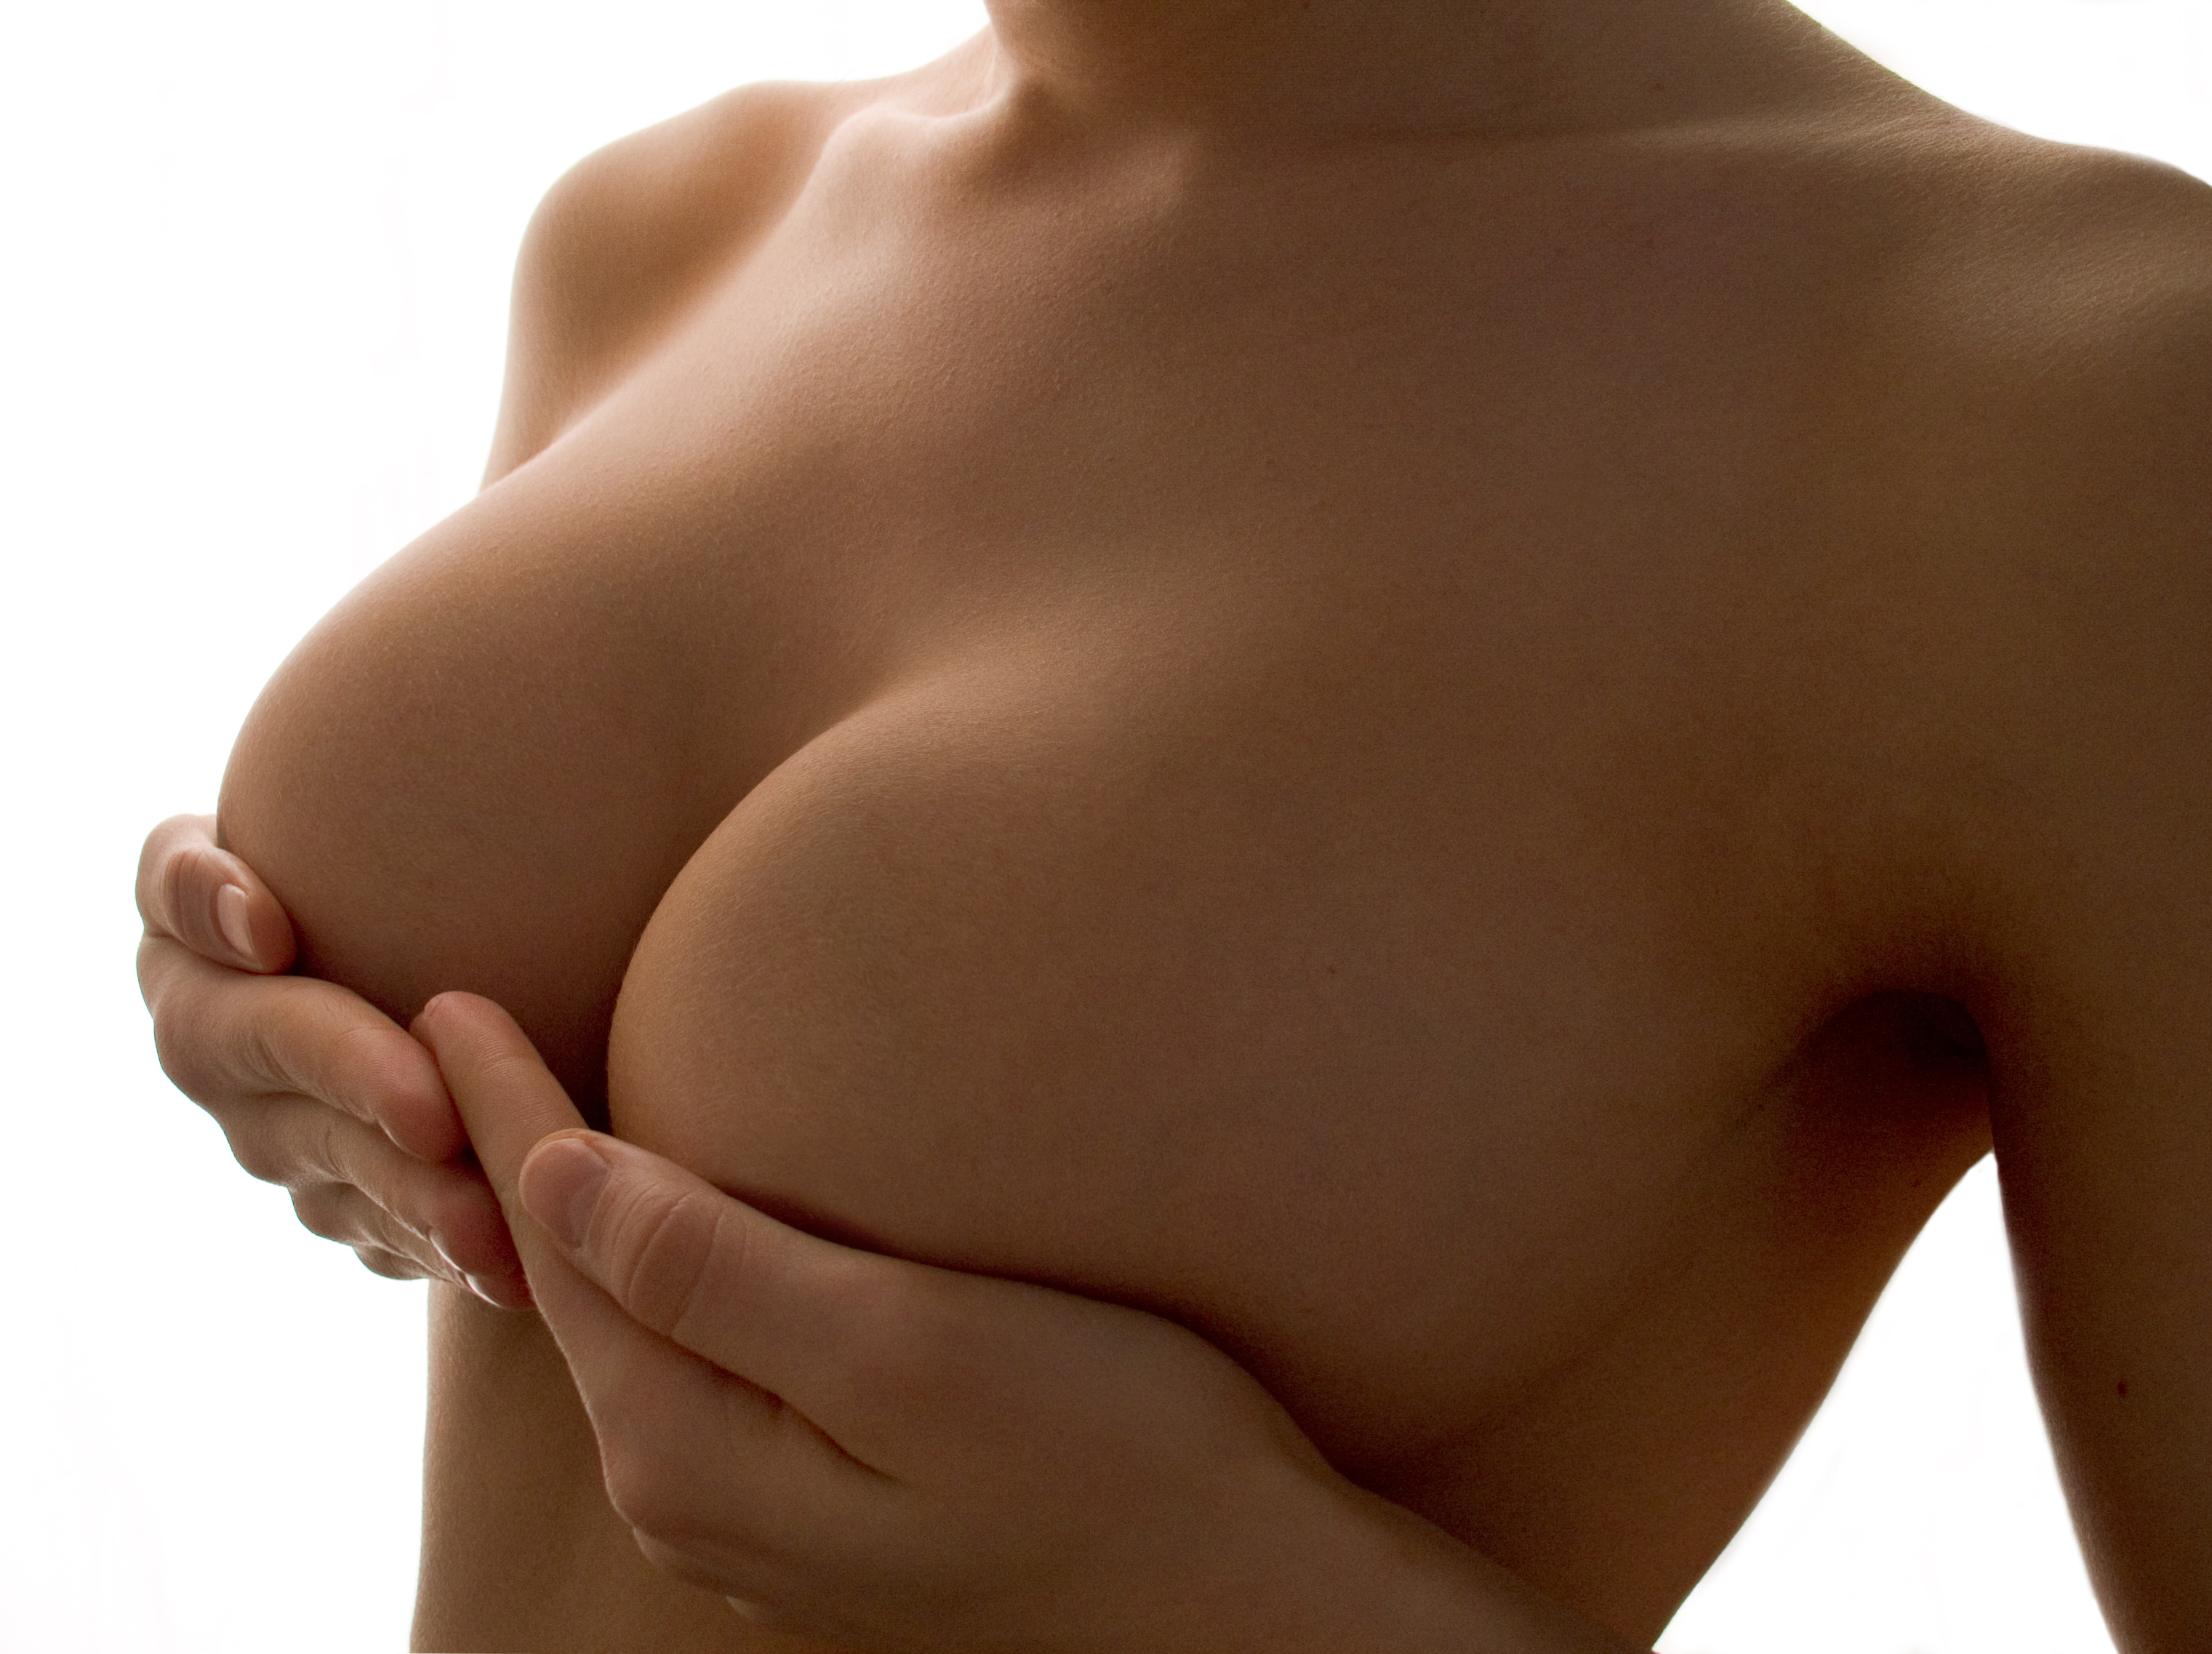 Guys Touching Breasts-3807